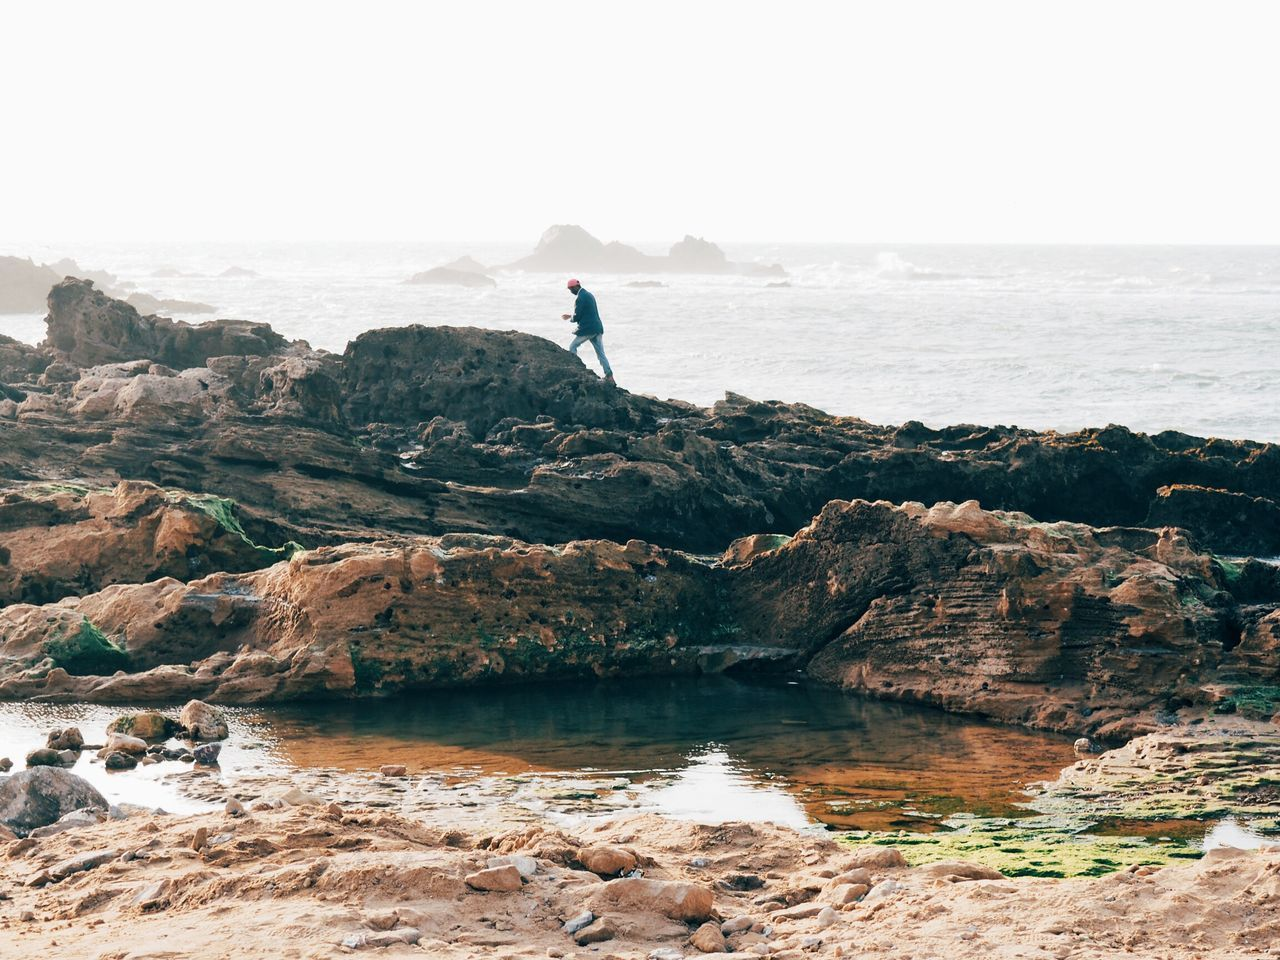 Sea One Person Beach Walk Rock Climbing Beach One Woman Only Silhouette Outdoors Leisure Activity Adult Water Morocco Morocco 🇲🇦 Tranquility Beauty In Nature One Man Only Wave Vacations People Nature Day Adults Only Beauty In Nature Only Women Sky